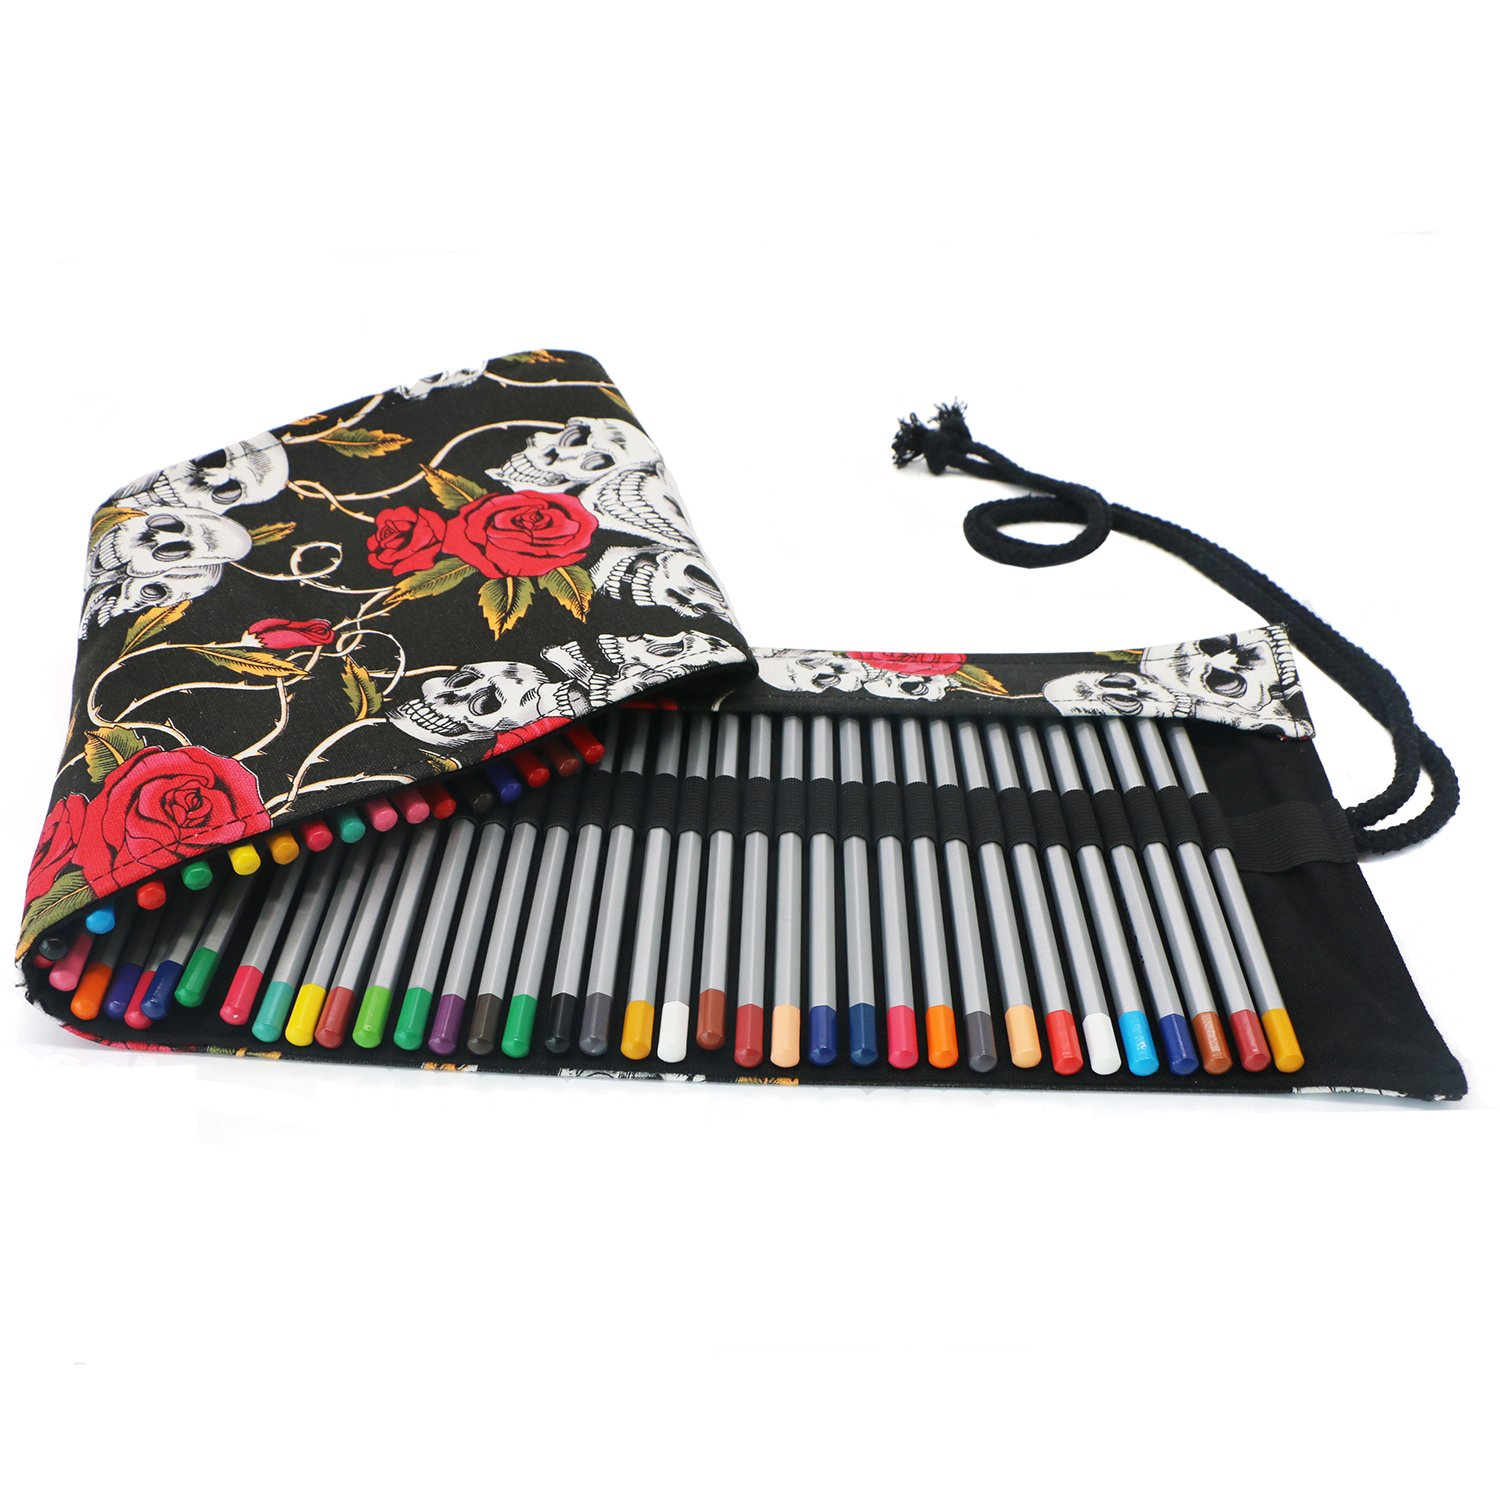 New 36/48/72 /12 Holes Canvas Wrap Roll Up Pencil Bag Pen Case Holder Storage Pouch Writing Supplies